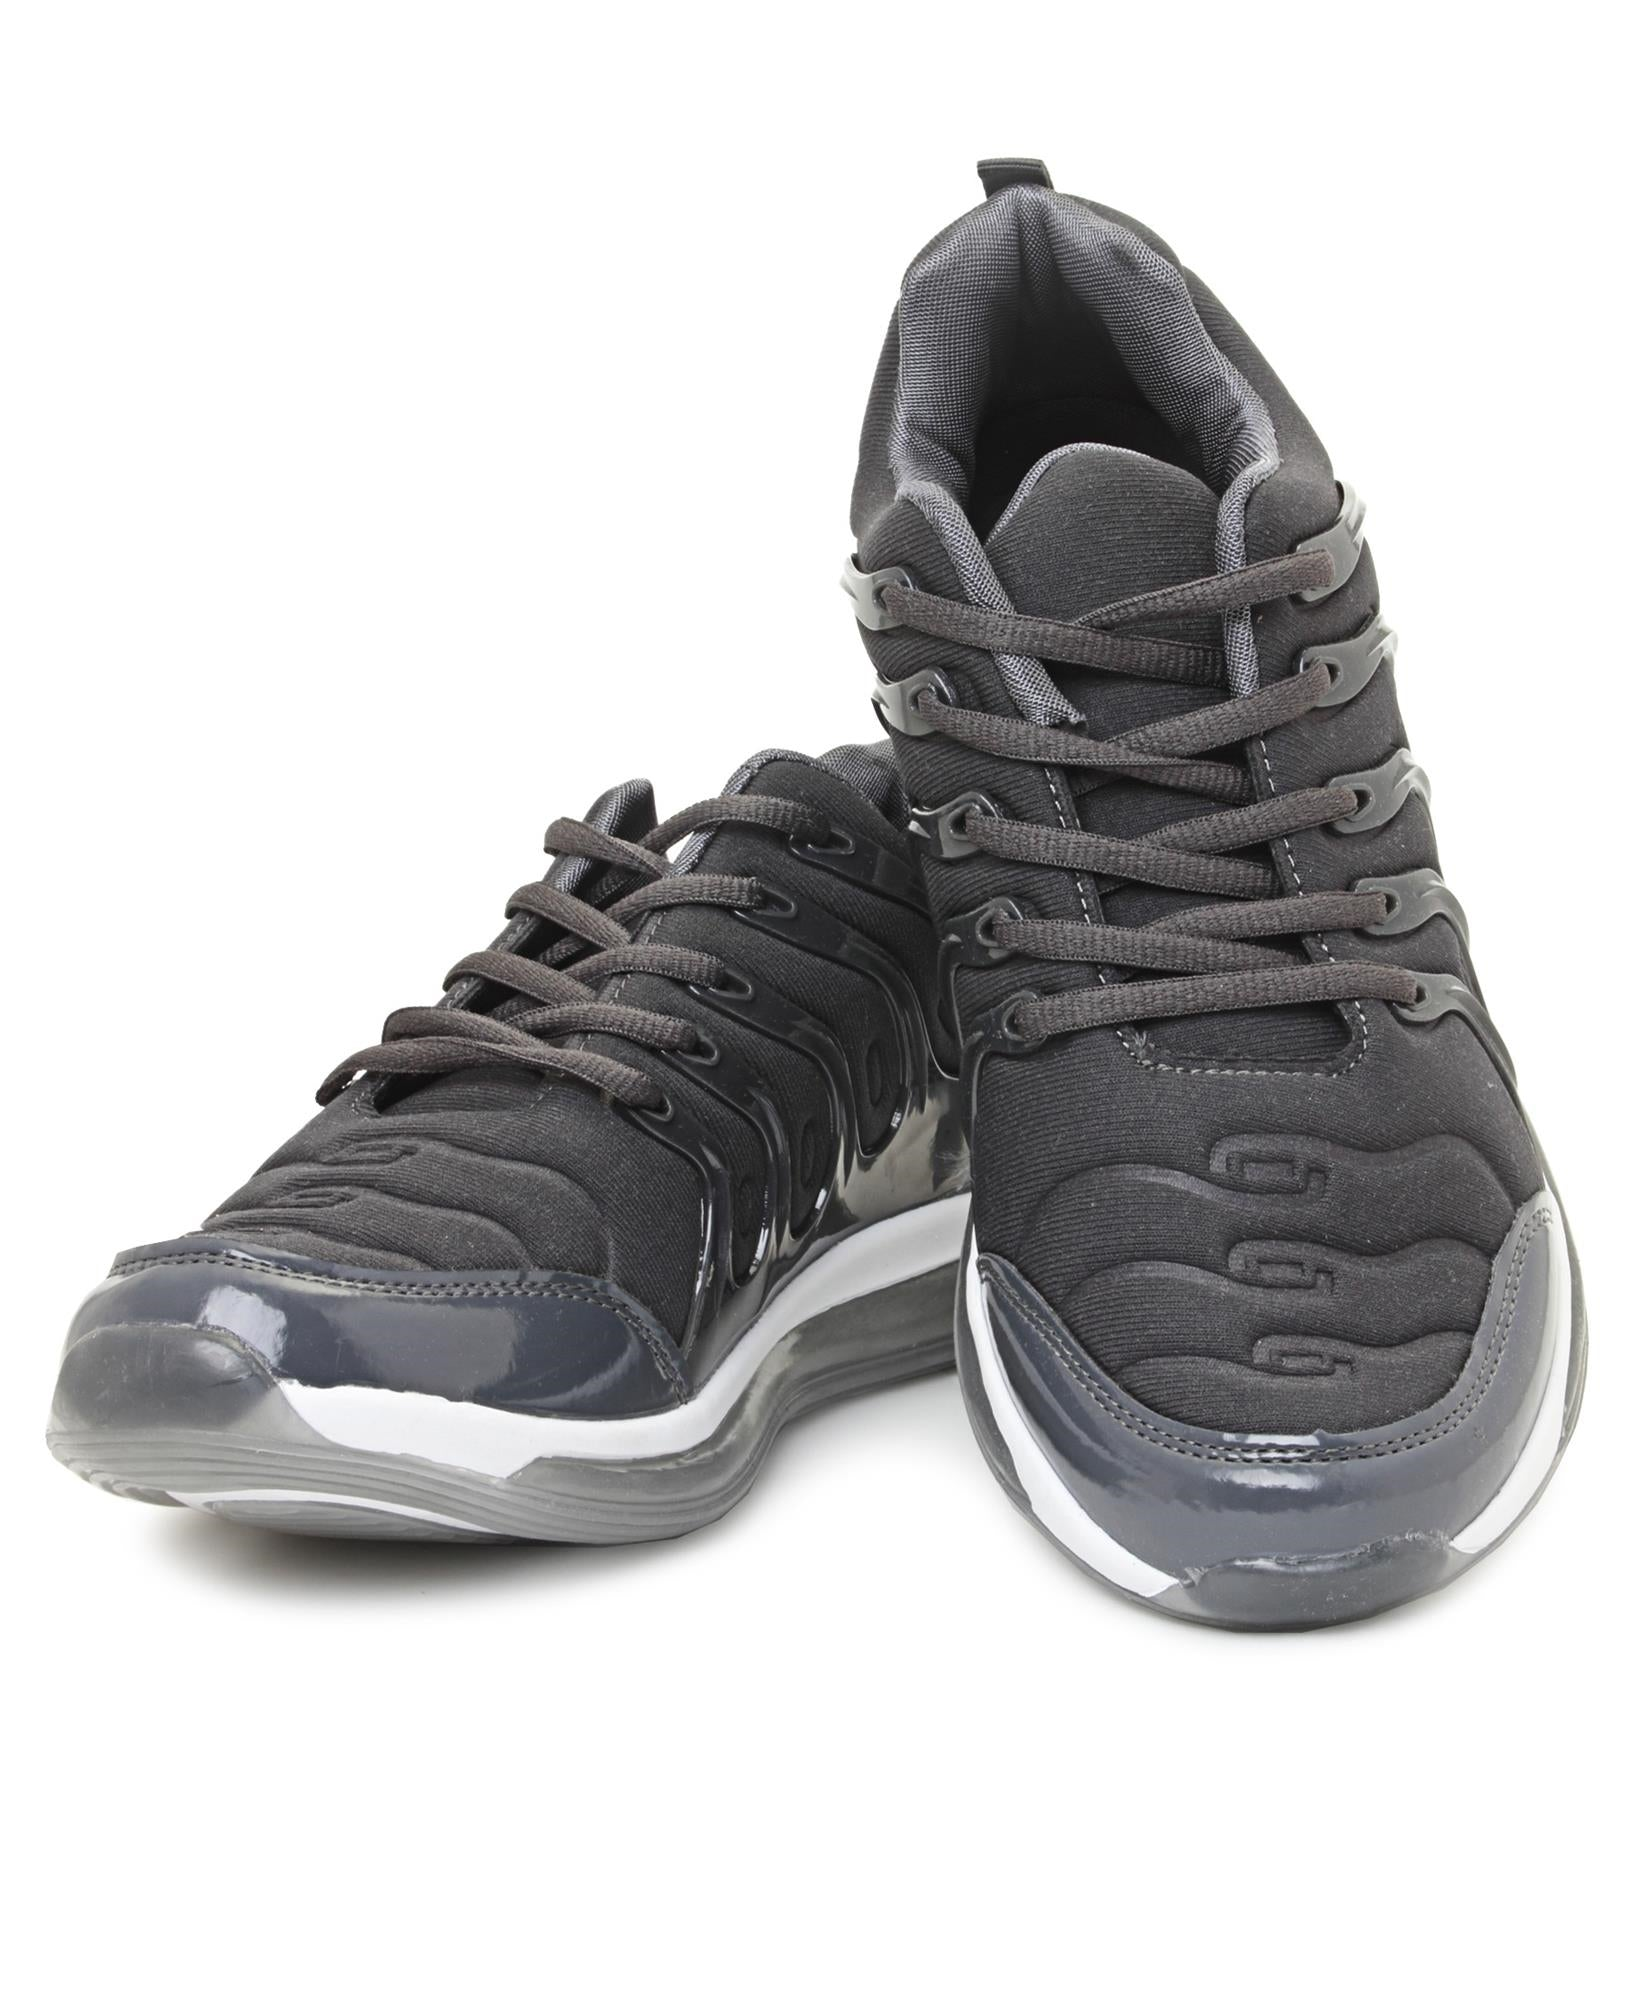 Men's Casual Sneakers - Dark Grey